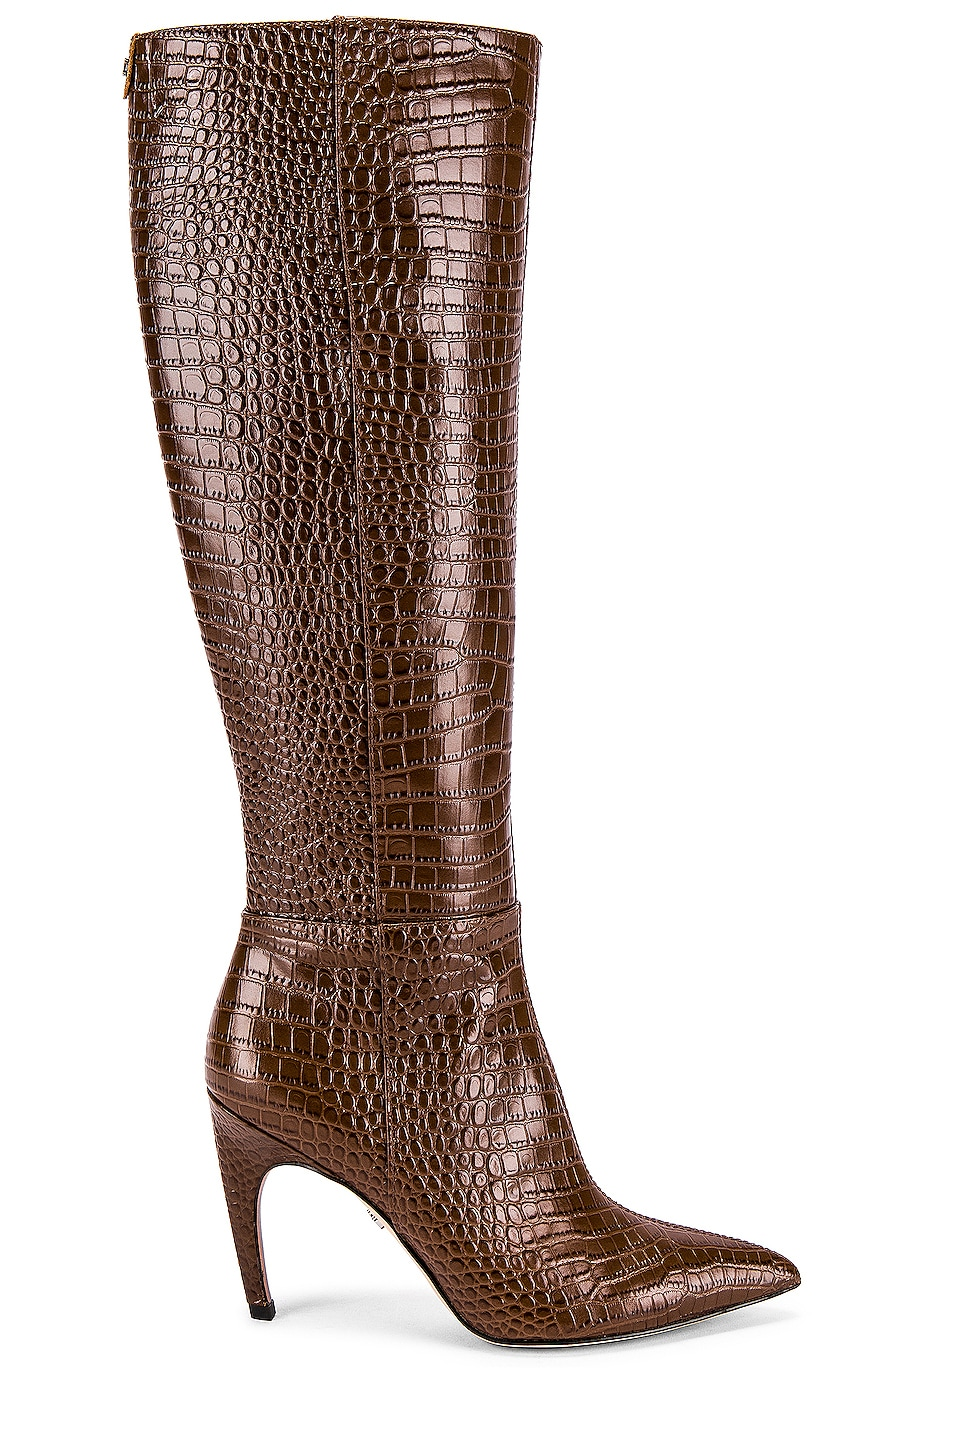 Sam Edelman Fraya Boot in Toasted Coconut